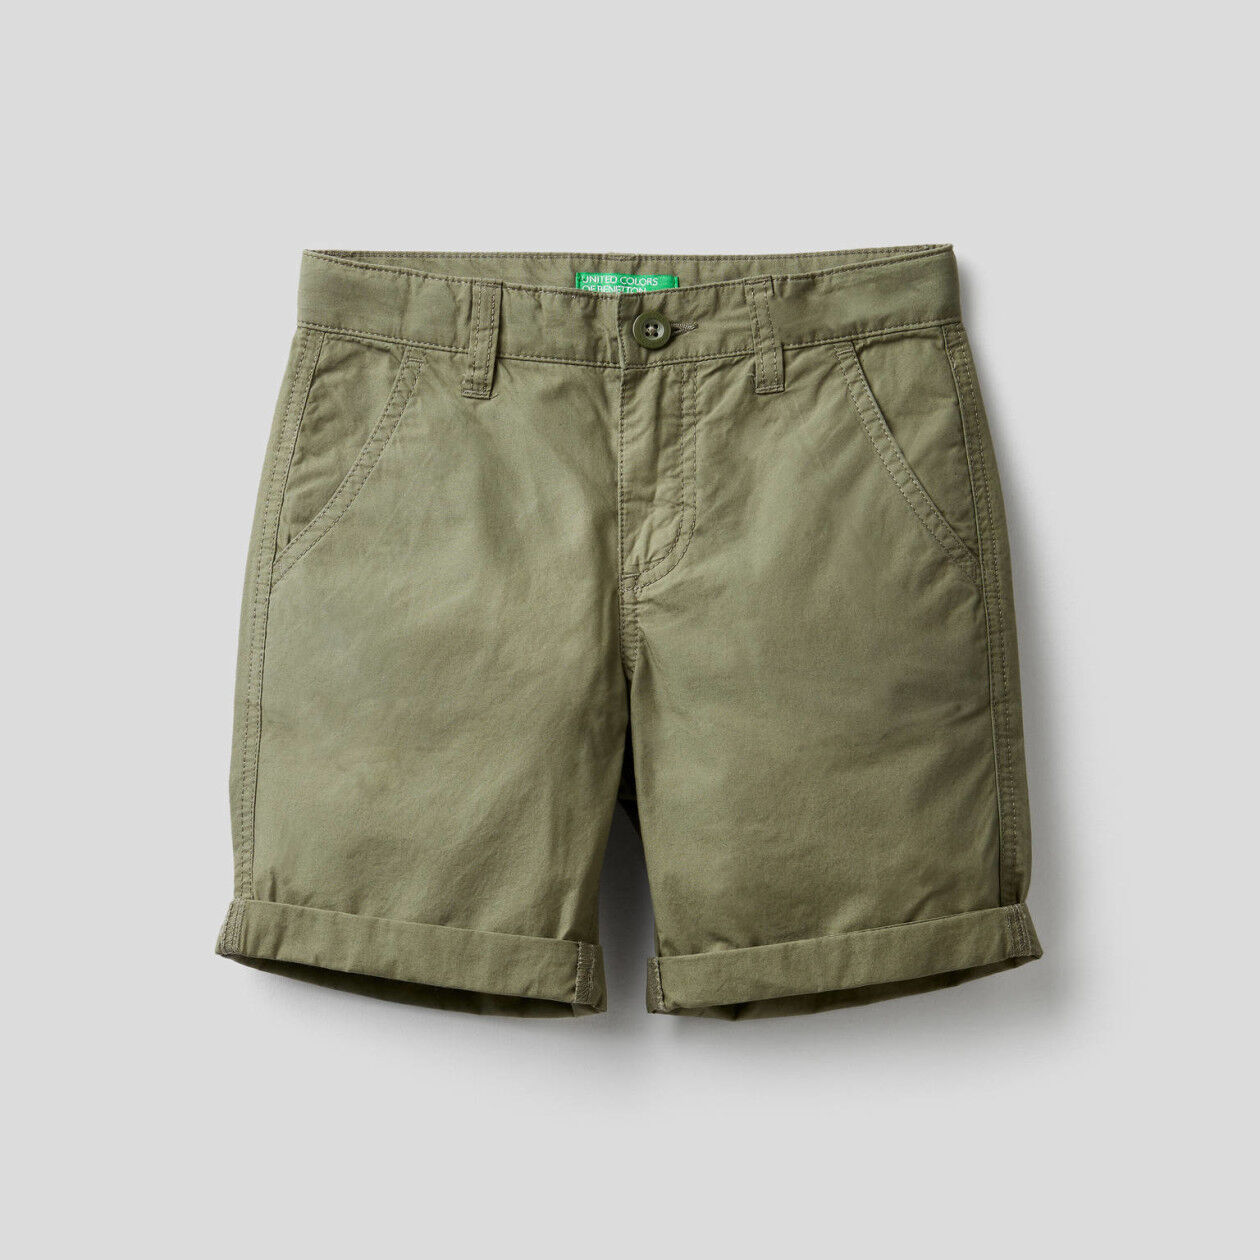 Pure cotton bermudas